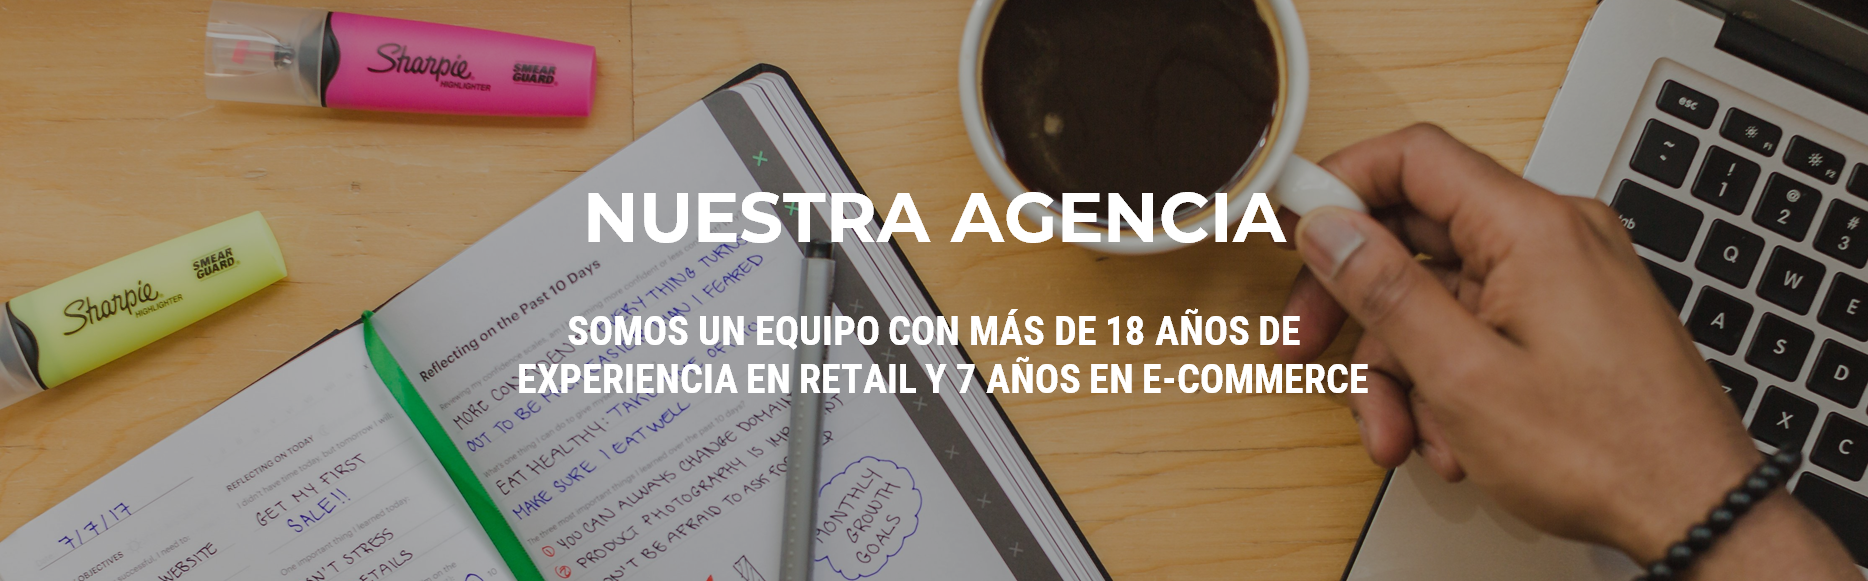 Moxie: Agencia ecommerce Shopify Partner en Colombia